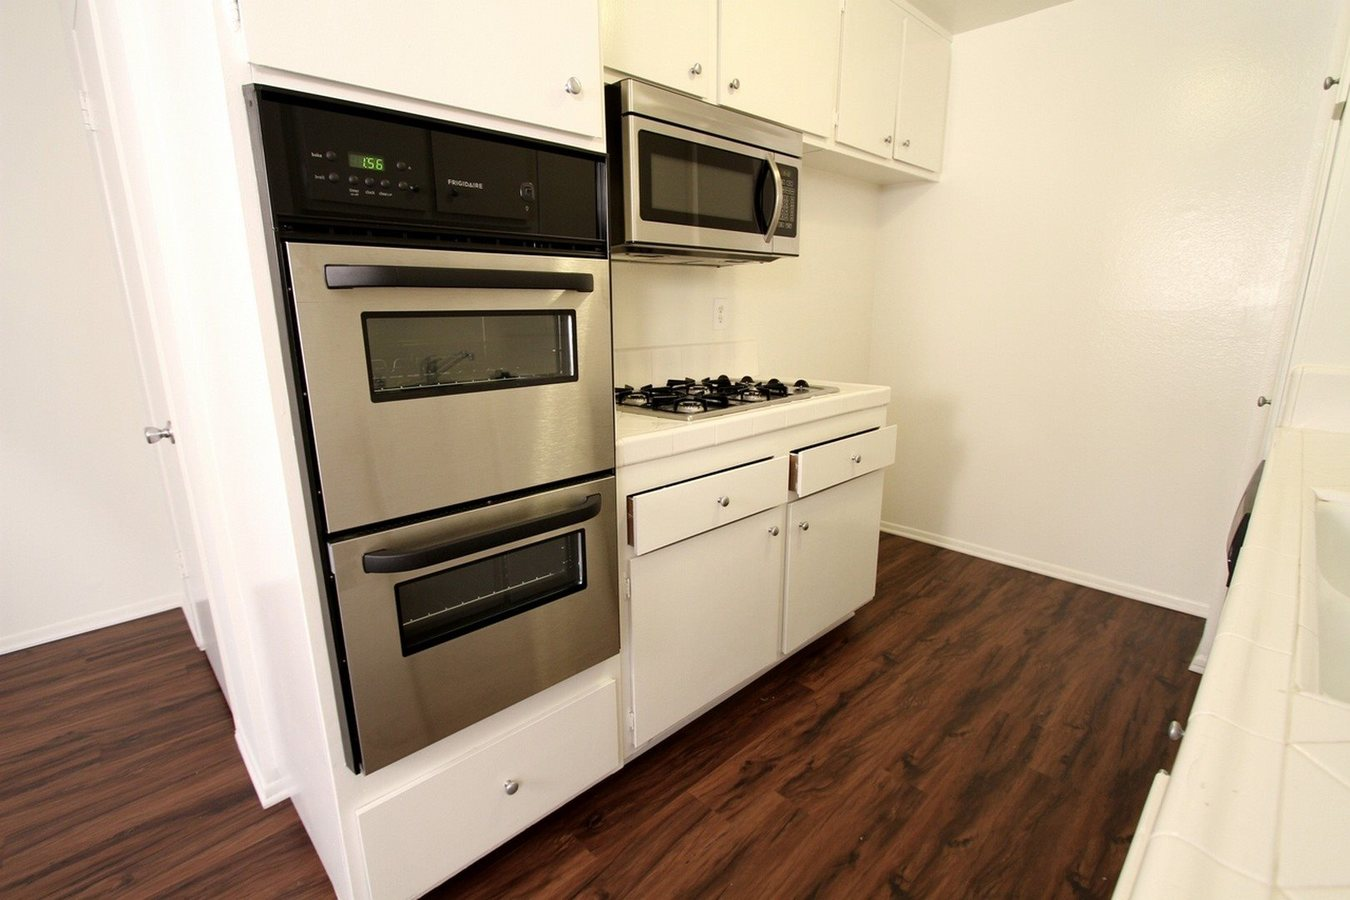 2 Bedrooms 2 Bathrooms Apartment for rent at Riverside Deluxe Apartments in Sherman Oaks, CA